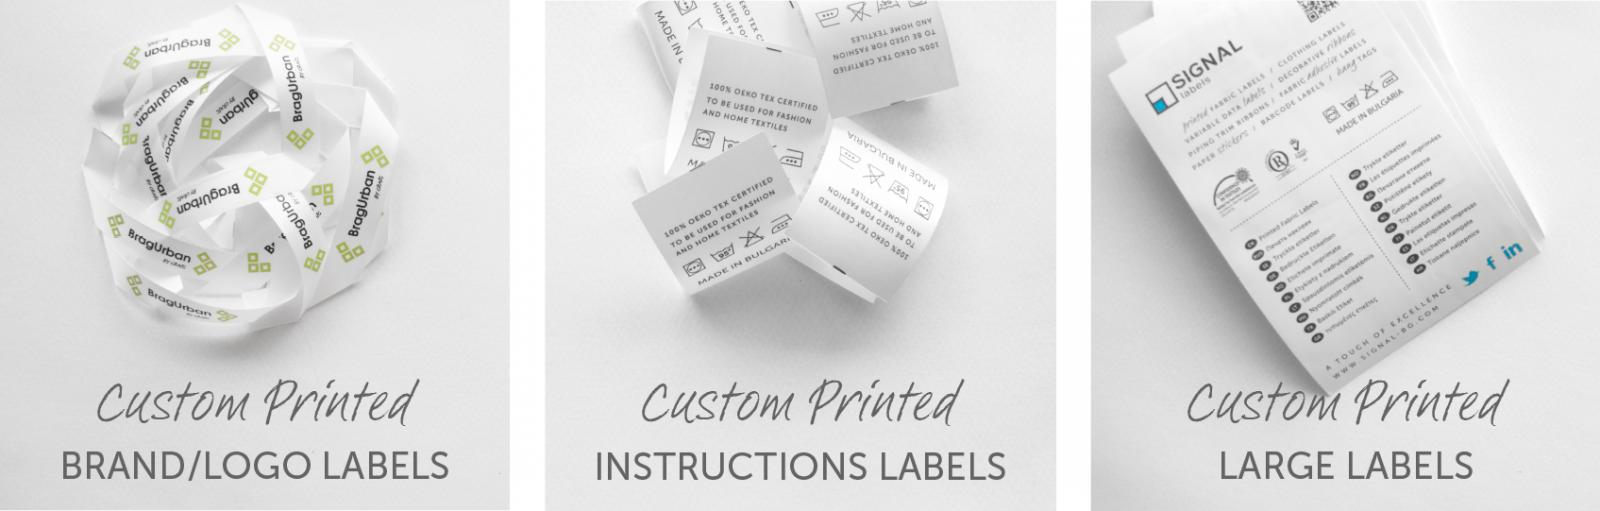 Custom Printed Fabric Labels for Clothing